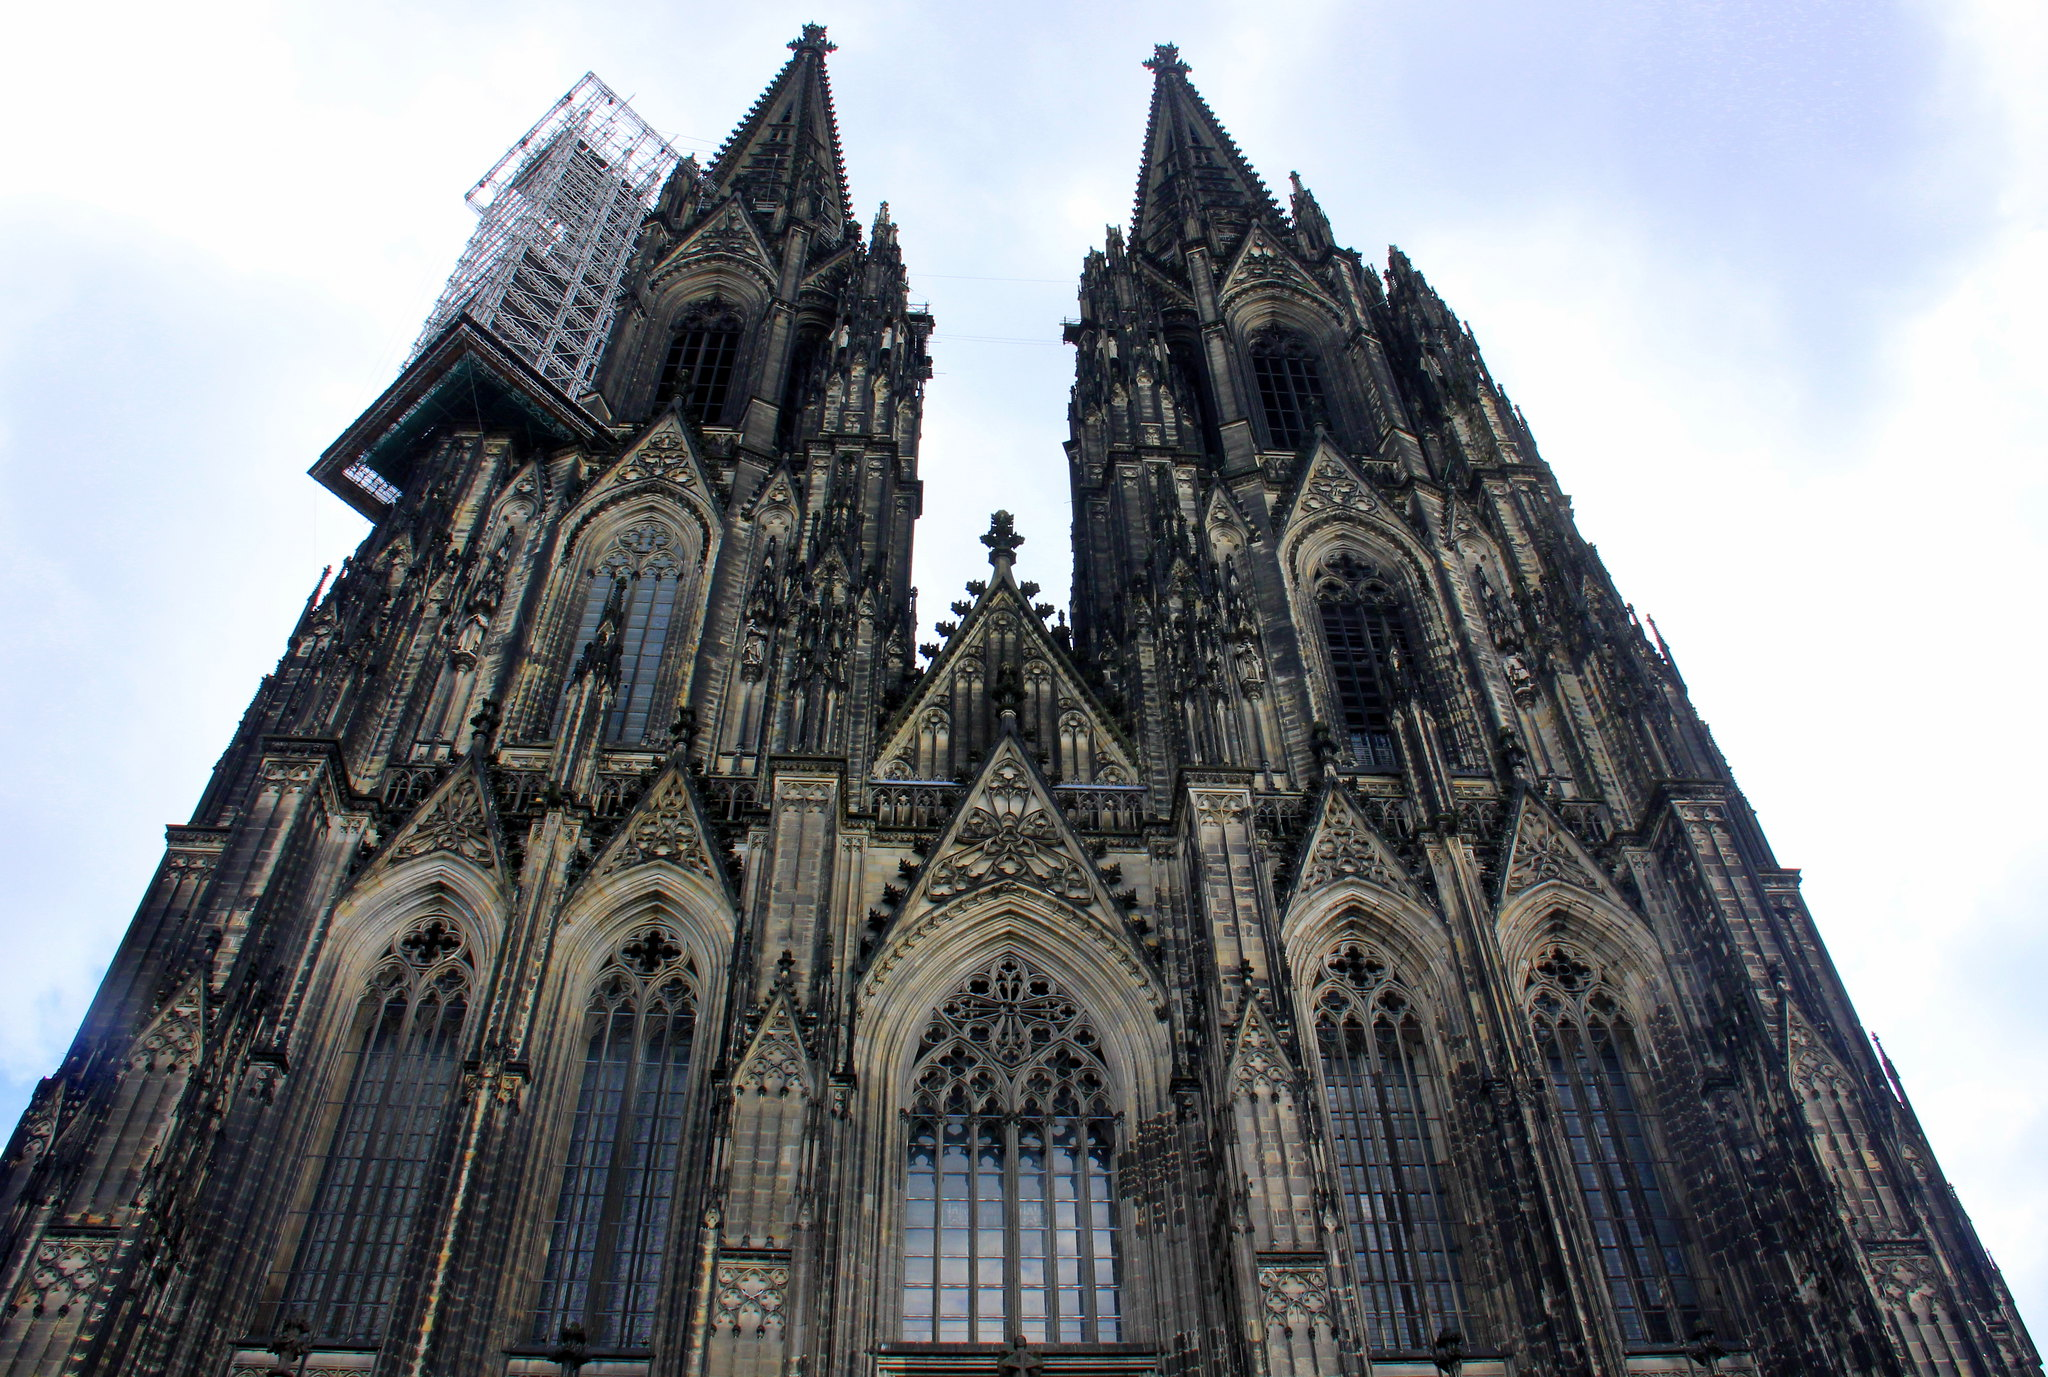 The Dom is the largest cathedral in Germany